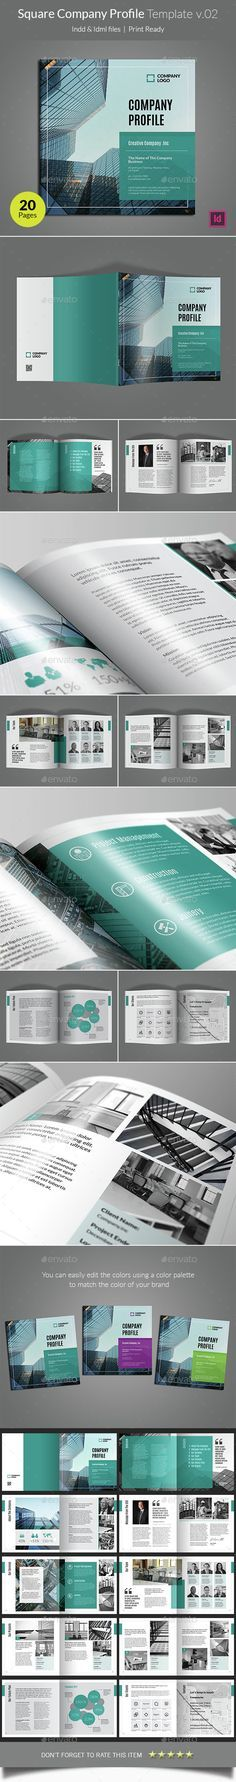 Company Profile Template V02 Company profile, Template and - corporate profile template